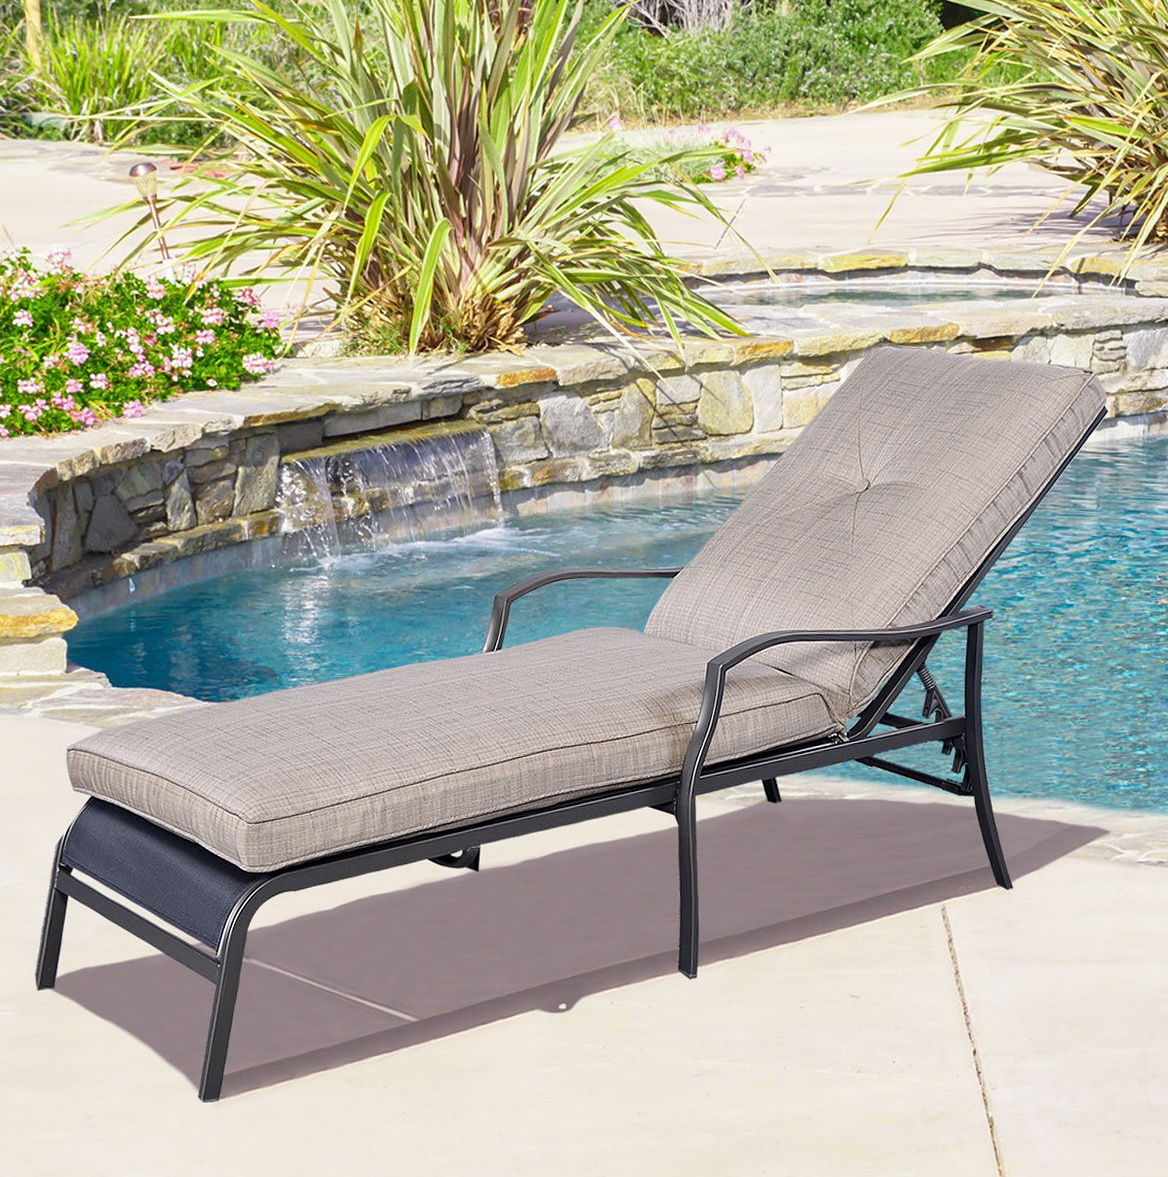 Poolside Chairs Poolside Chaise Lounge Chairs Sale Home Design Ideas